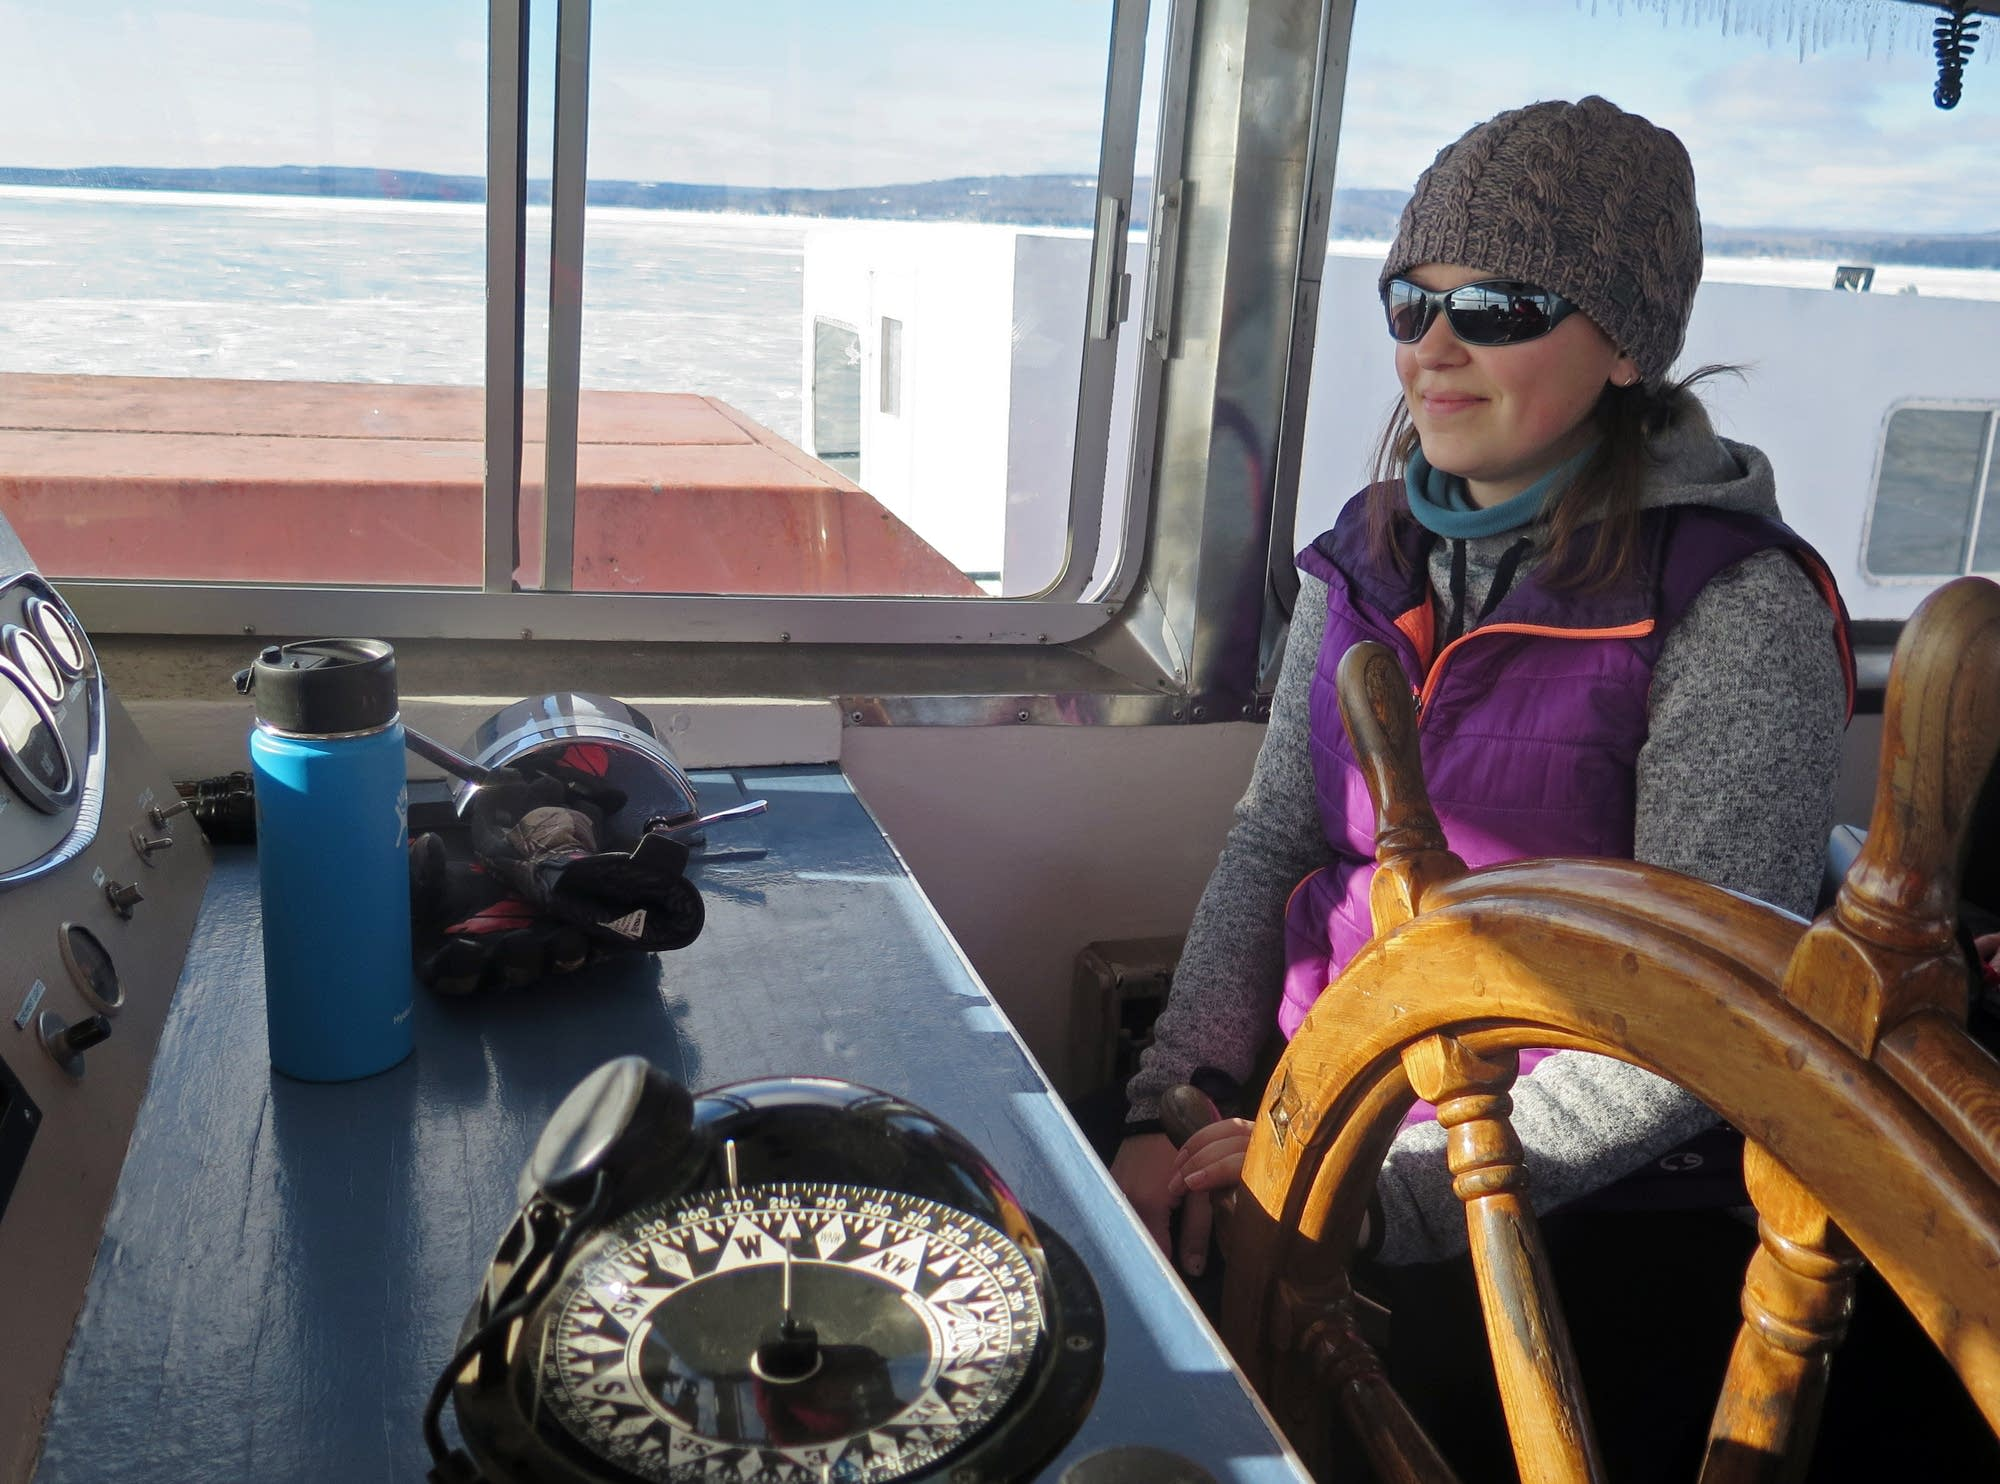 Shannon Mager, captain for the Madeline Island Ferry Line